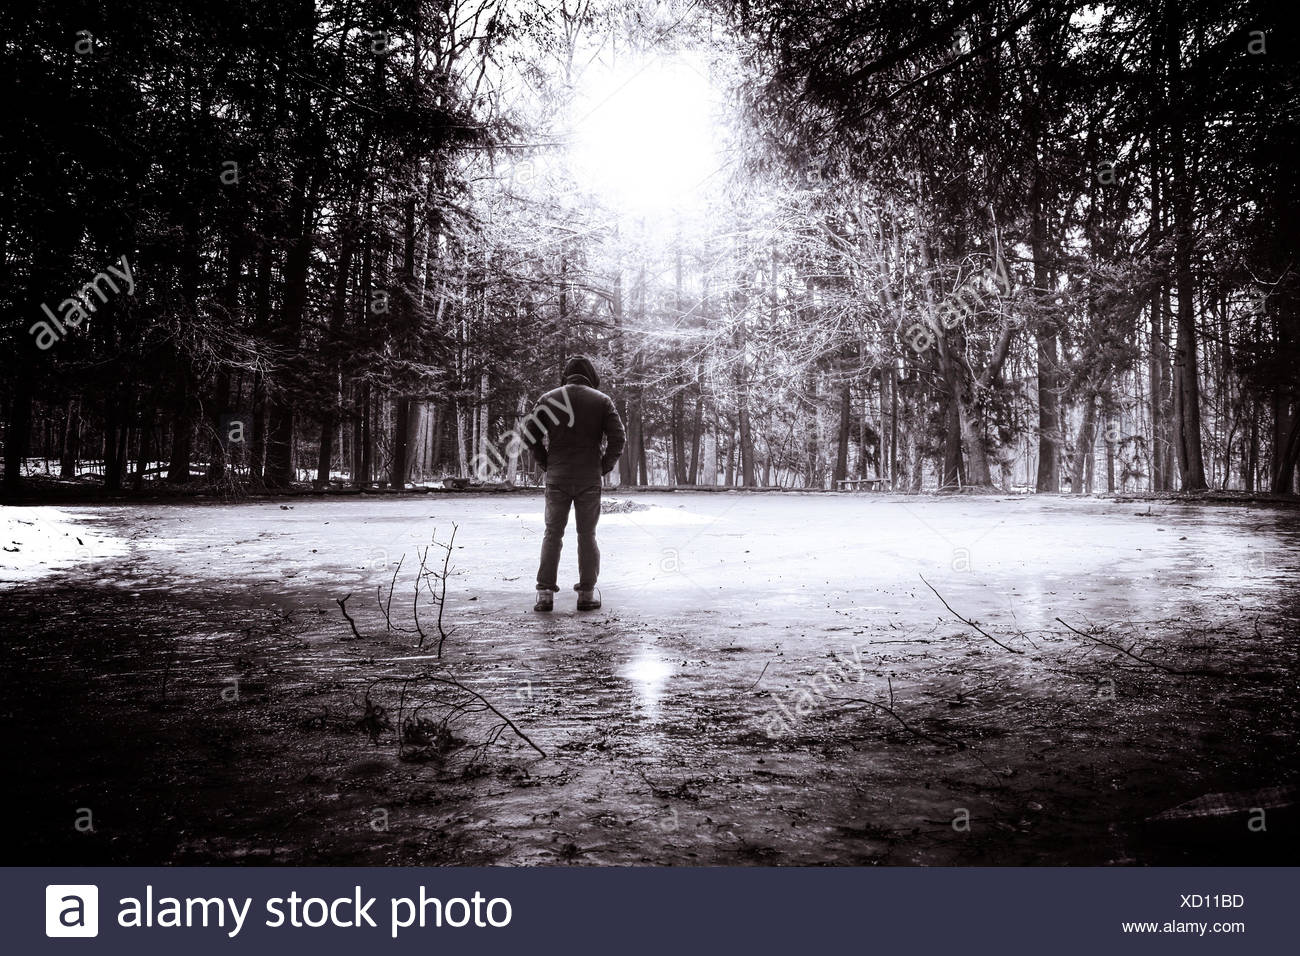 Young man in hooded shirt standing in park, Rear view - Stock Image